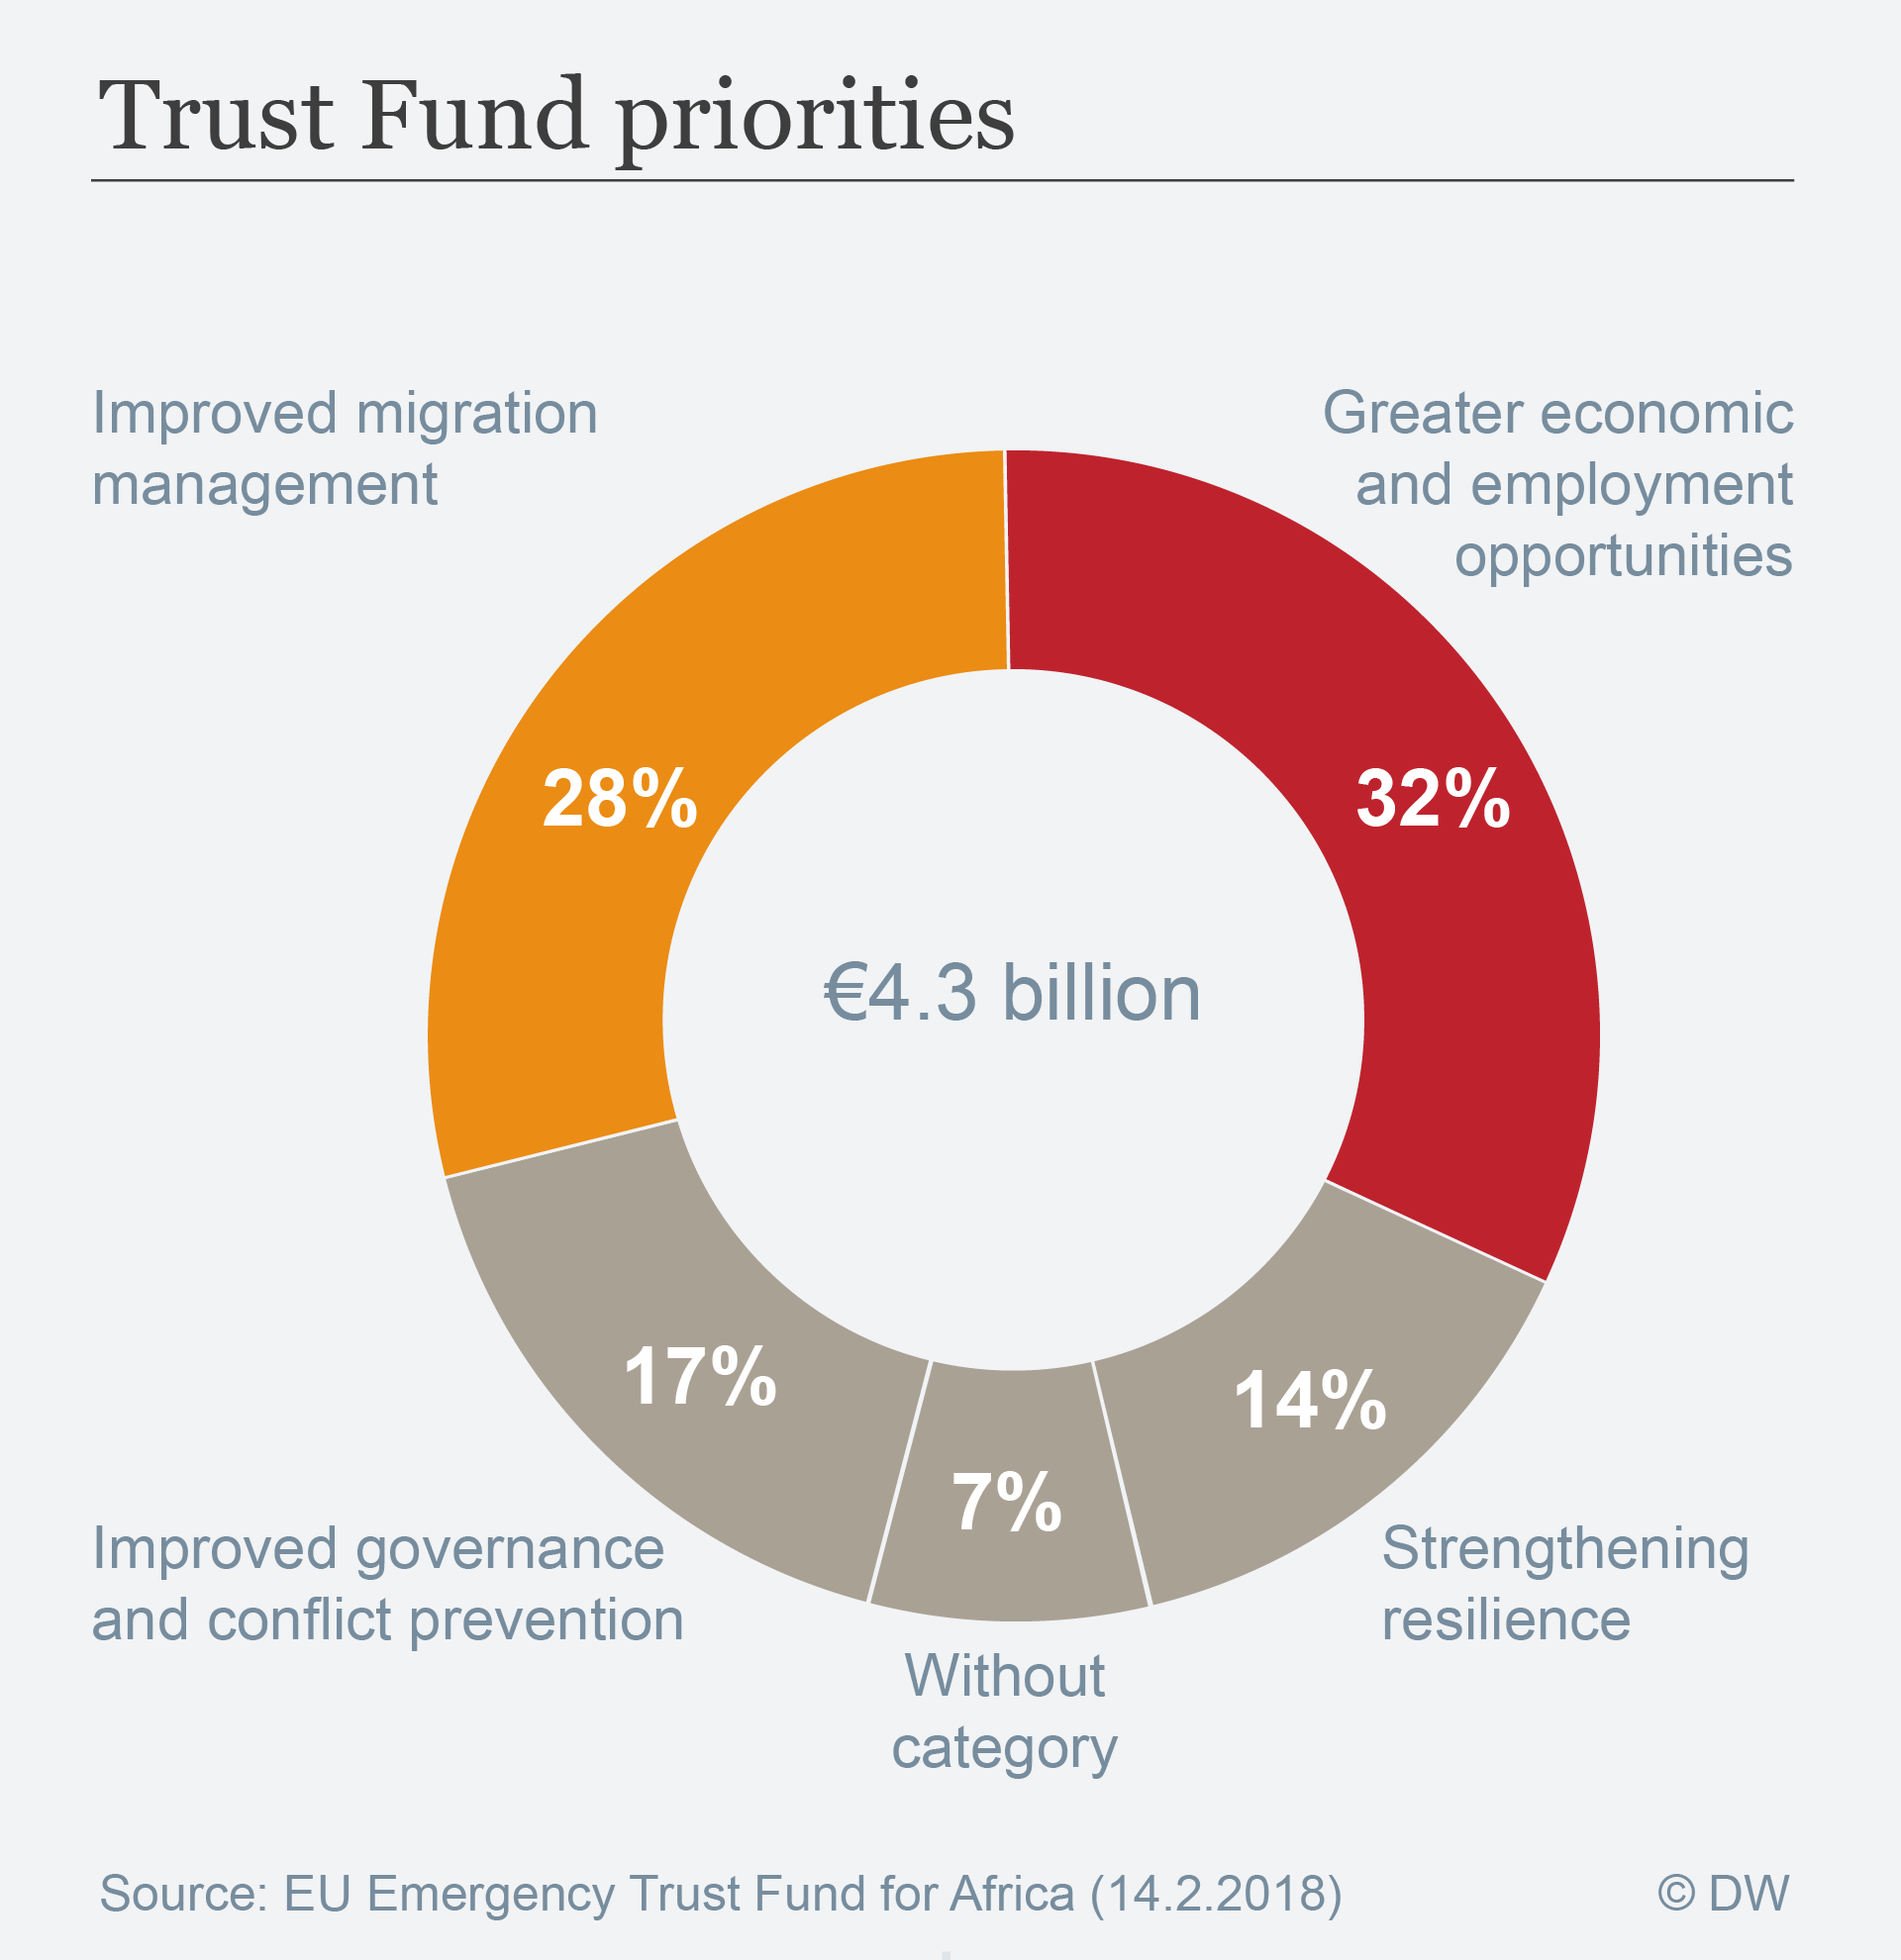 Data visualization: EU Trust Fund priorities